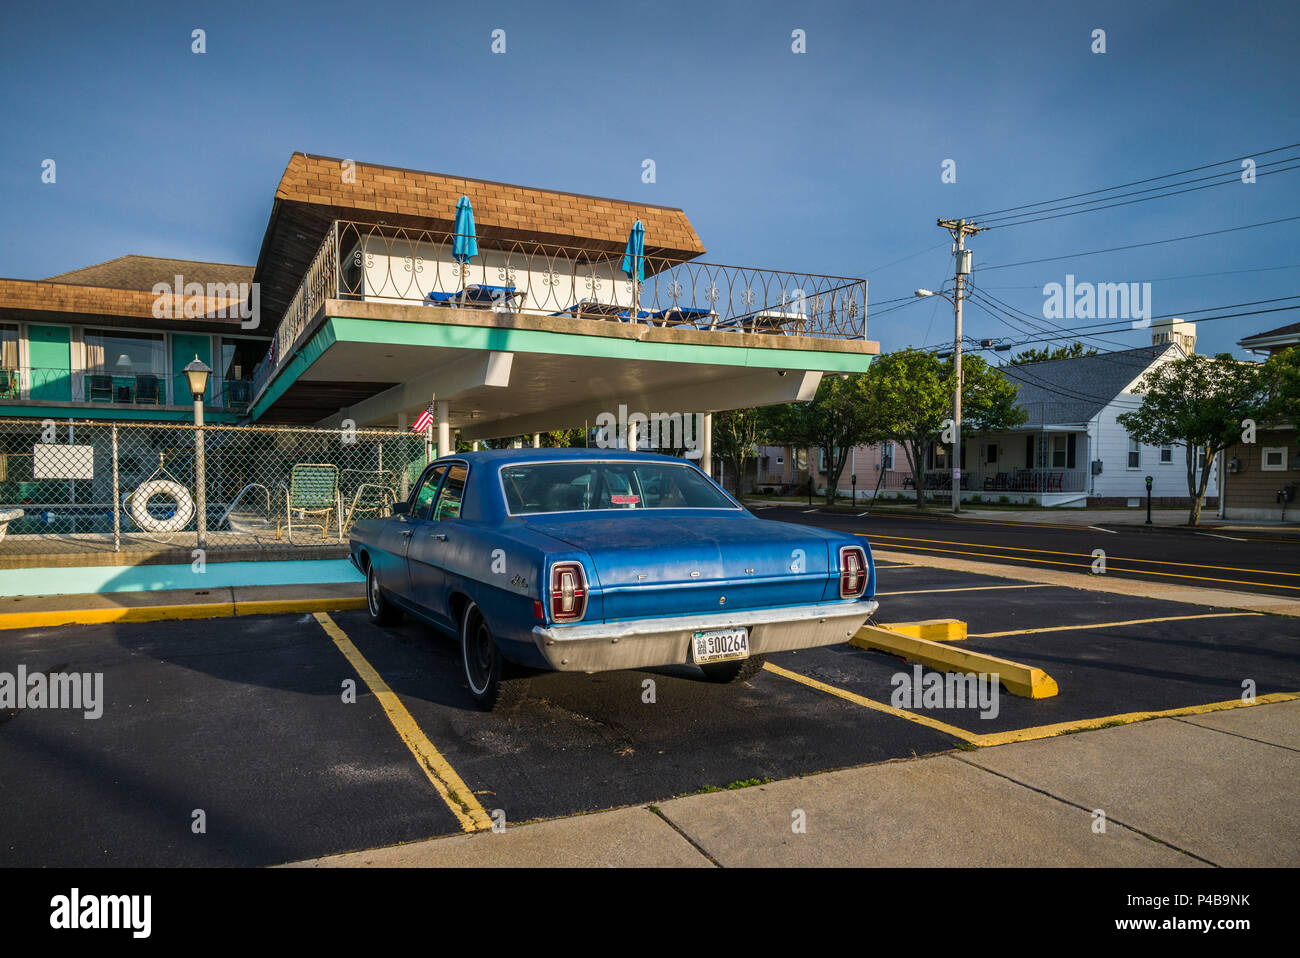 USA, New Jersey, The Jersey Shore, Wildwoods, 1950s-era Doo-Wop architecture, motel and old car - Stock Image